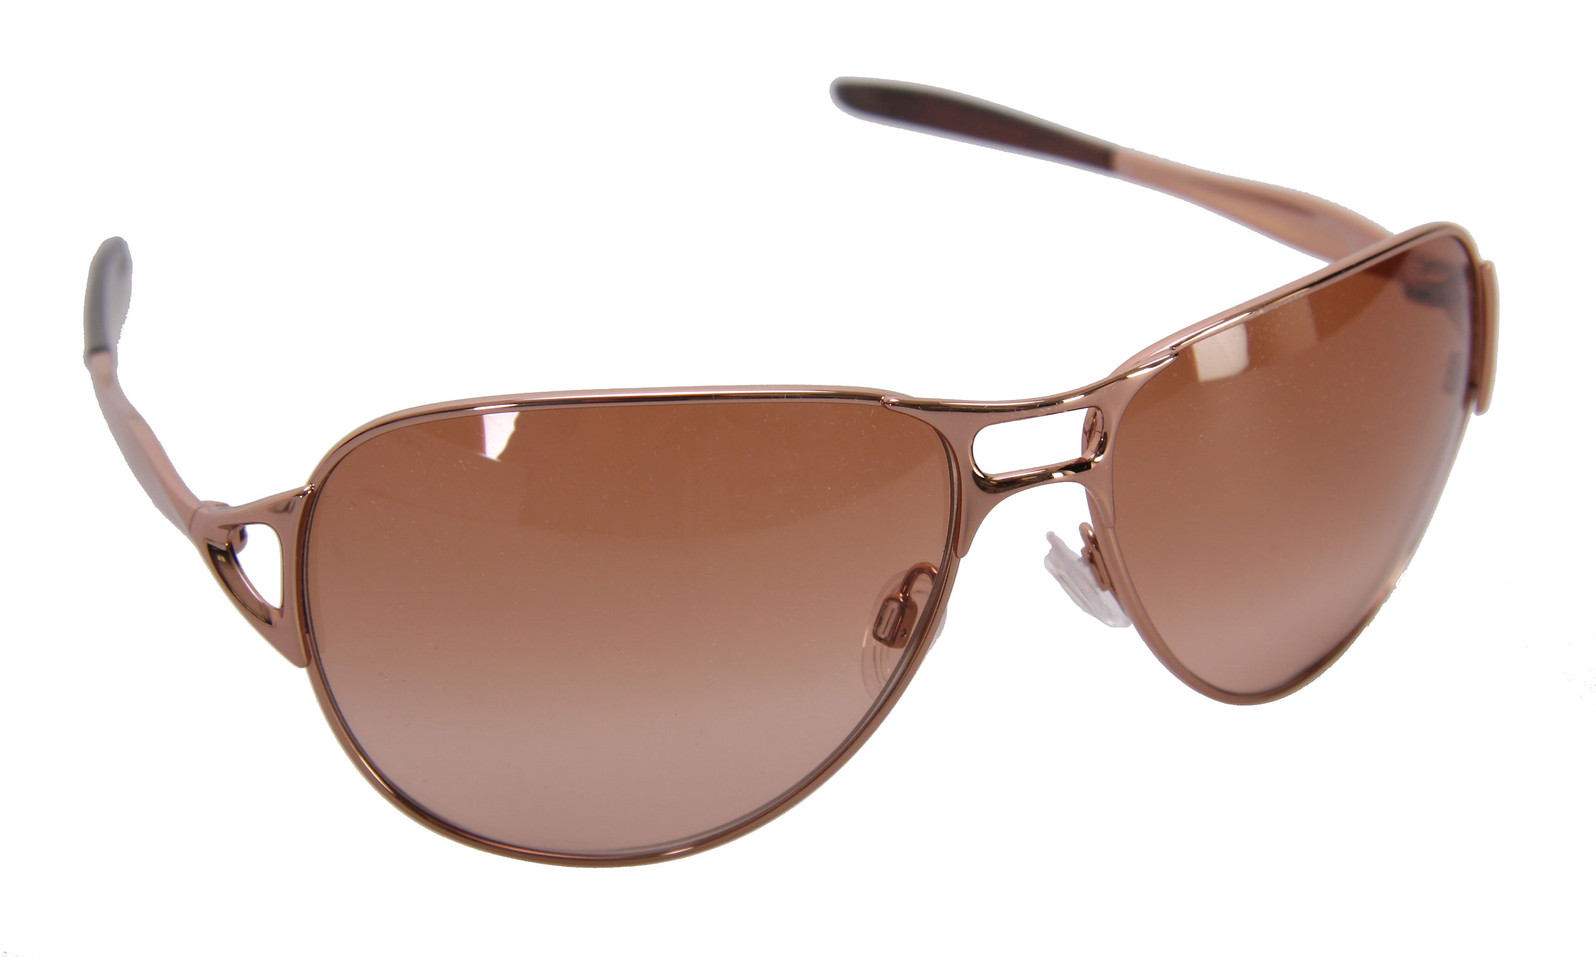 Oakley Hinder Sunglasses Rose Gold/Vr50 Brown Grad Lens  oakley-hinder-sngls-wmns-rosegoldbrwngrad-10.jpg